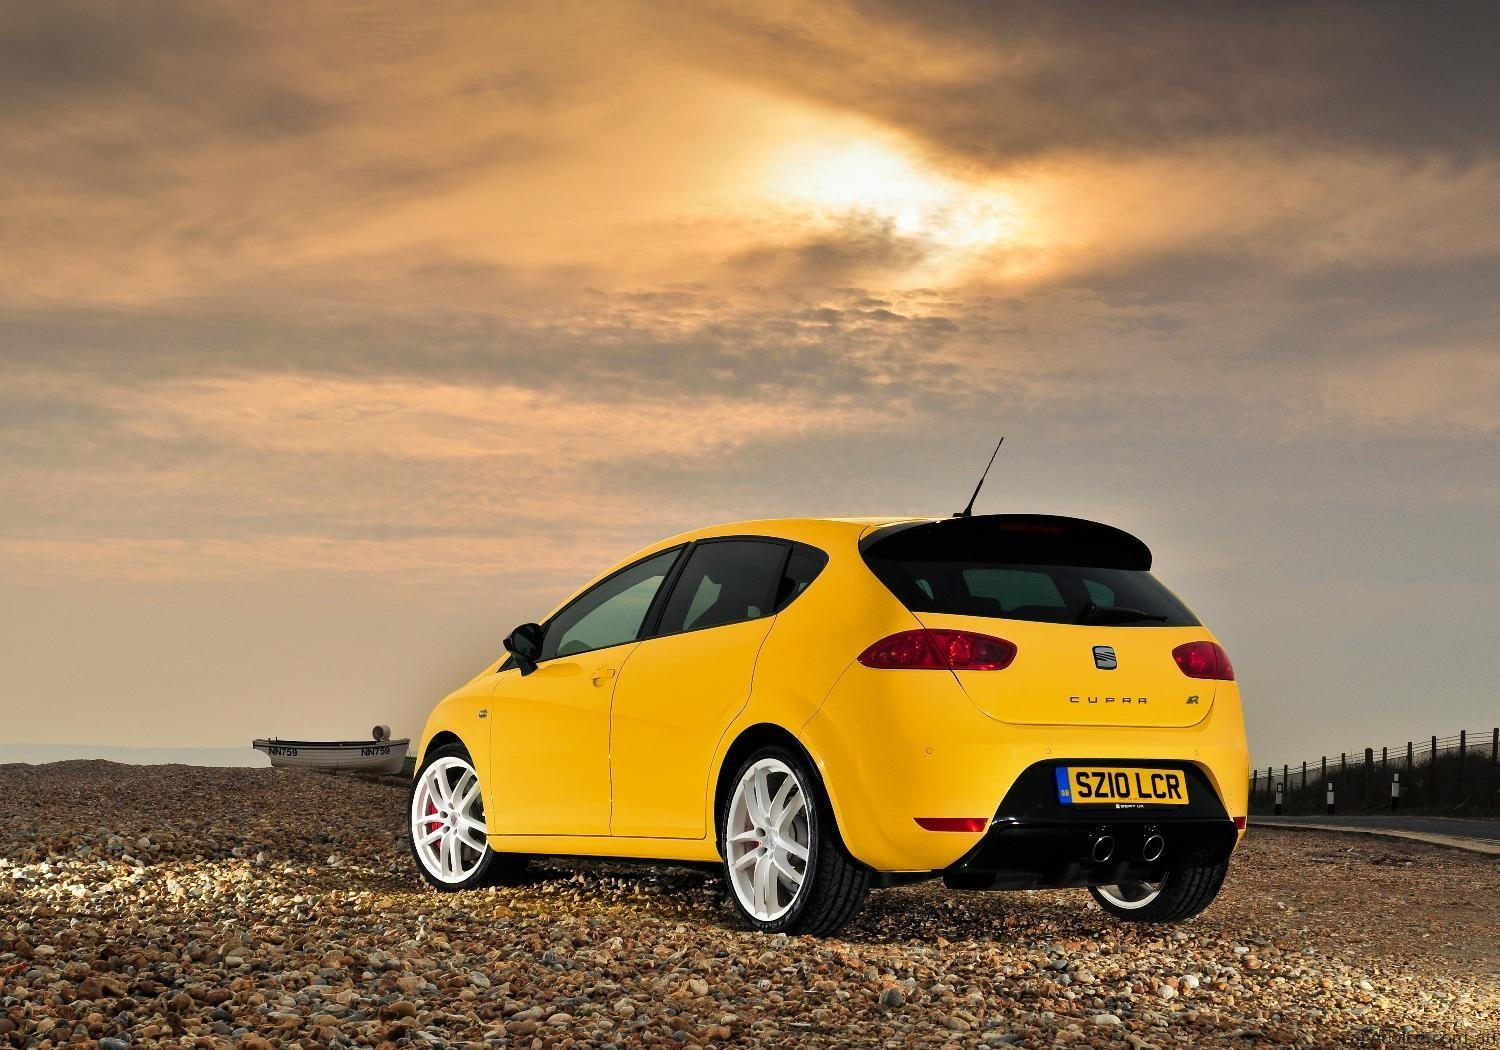 Suv For Sale By Owner >> 2010 Seat Leon Cupra R on sale in the UK - Photos (1 of 8)